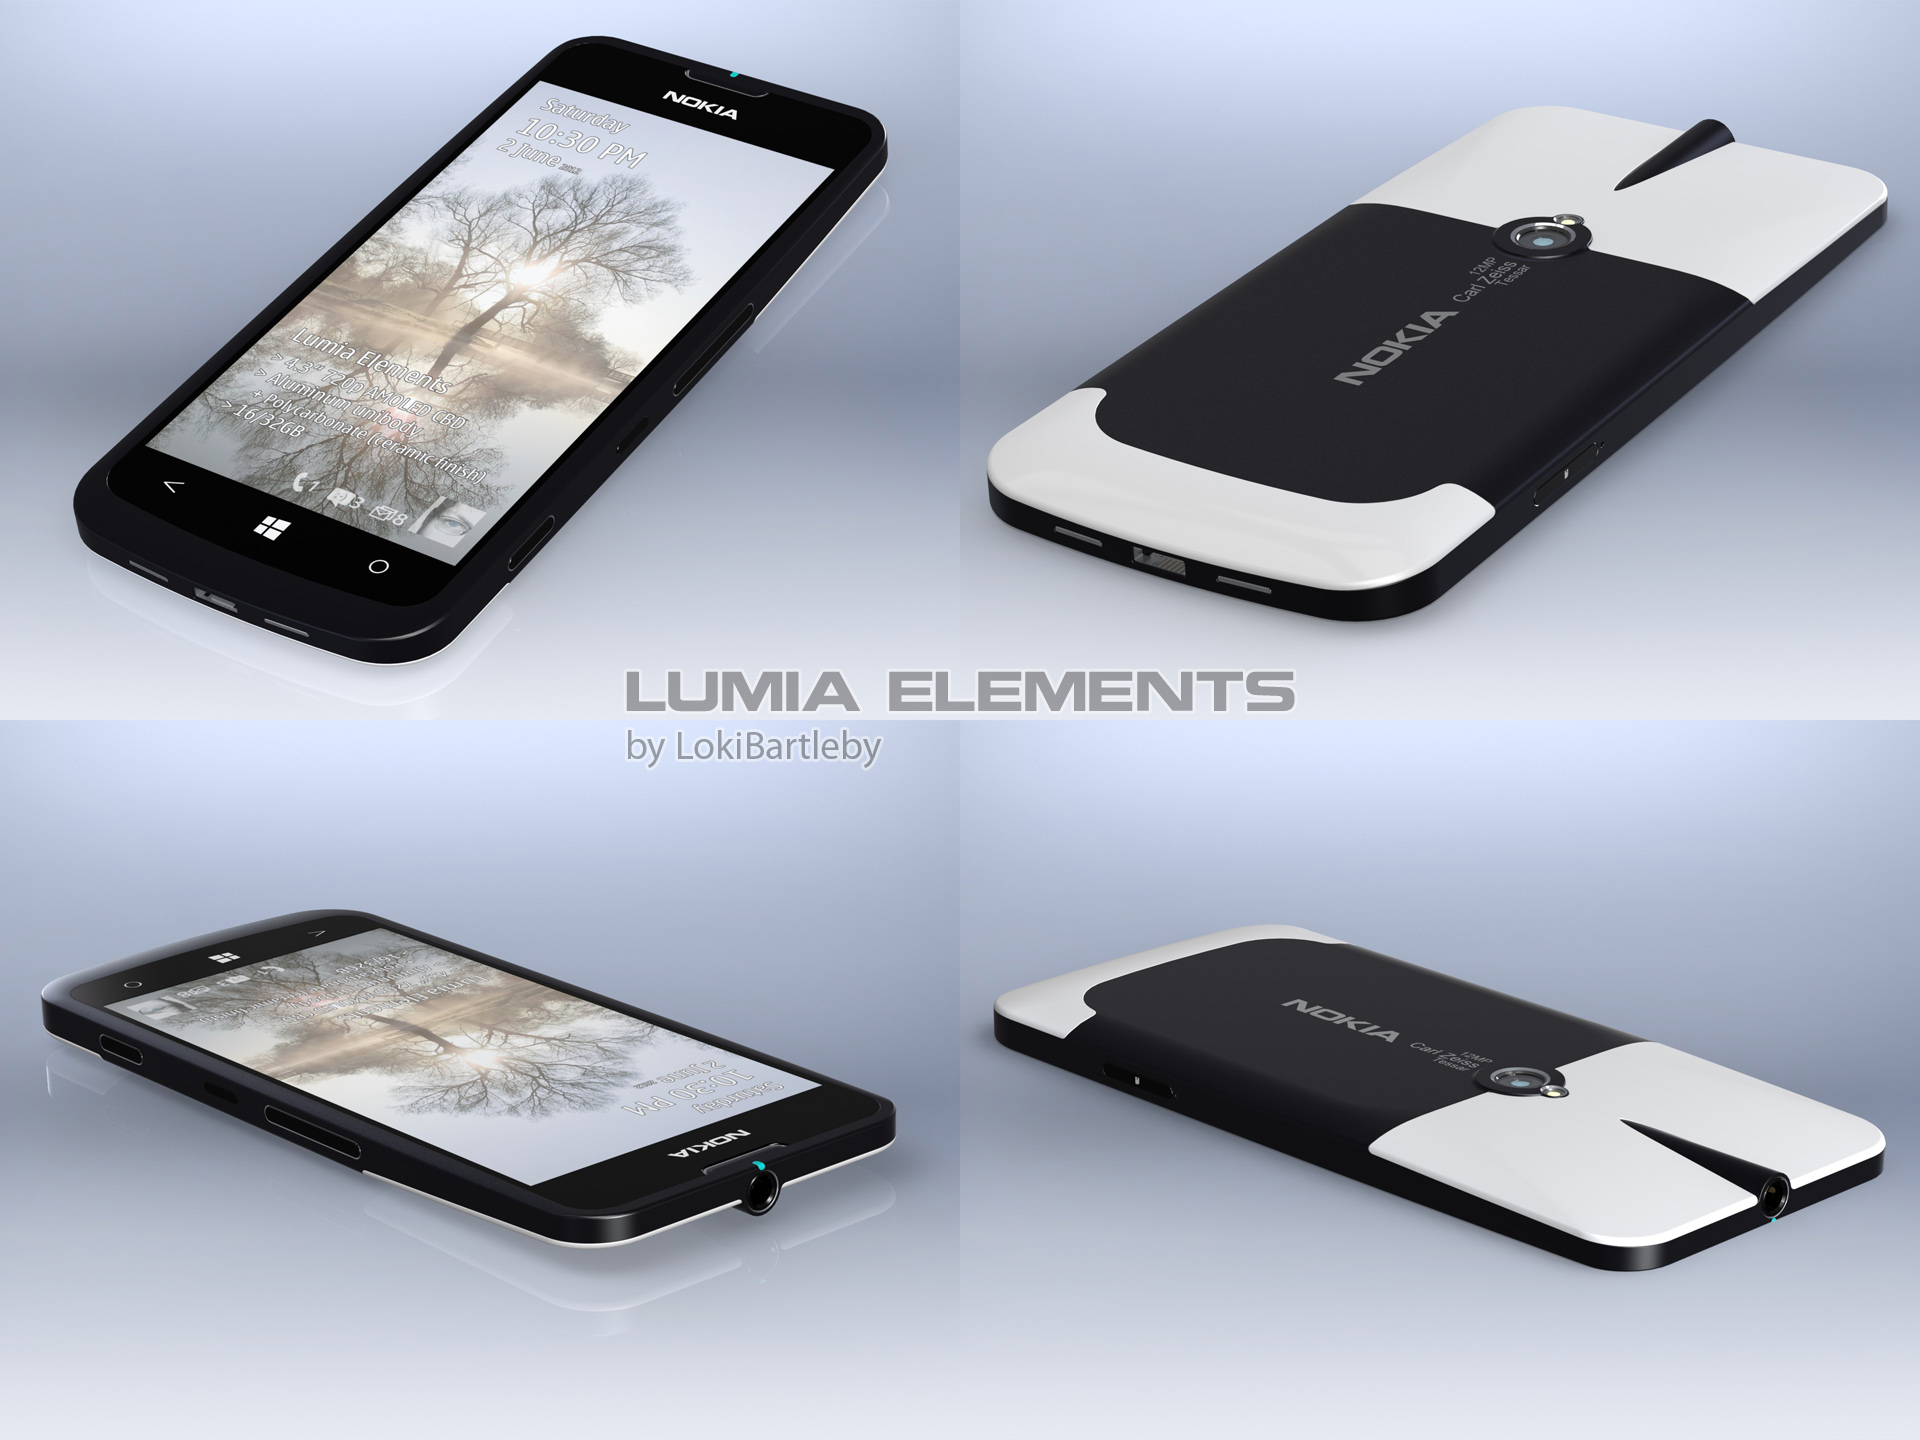 Nokia Lumia Elements by LokiBartleby